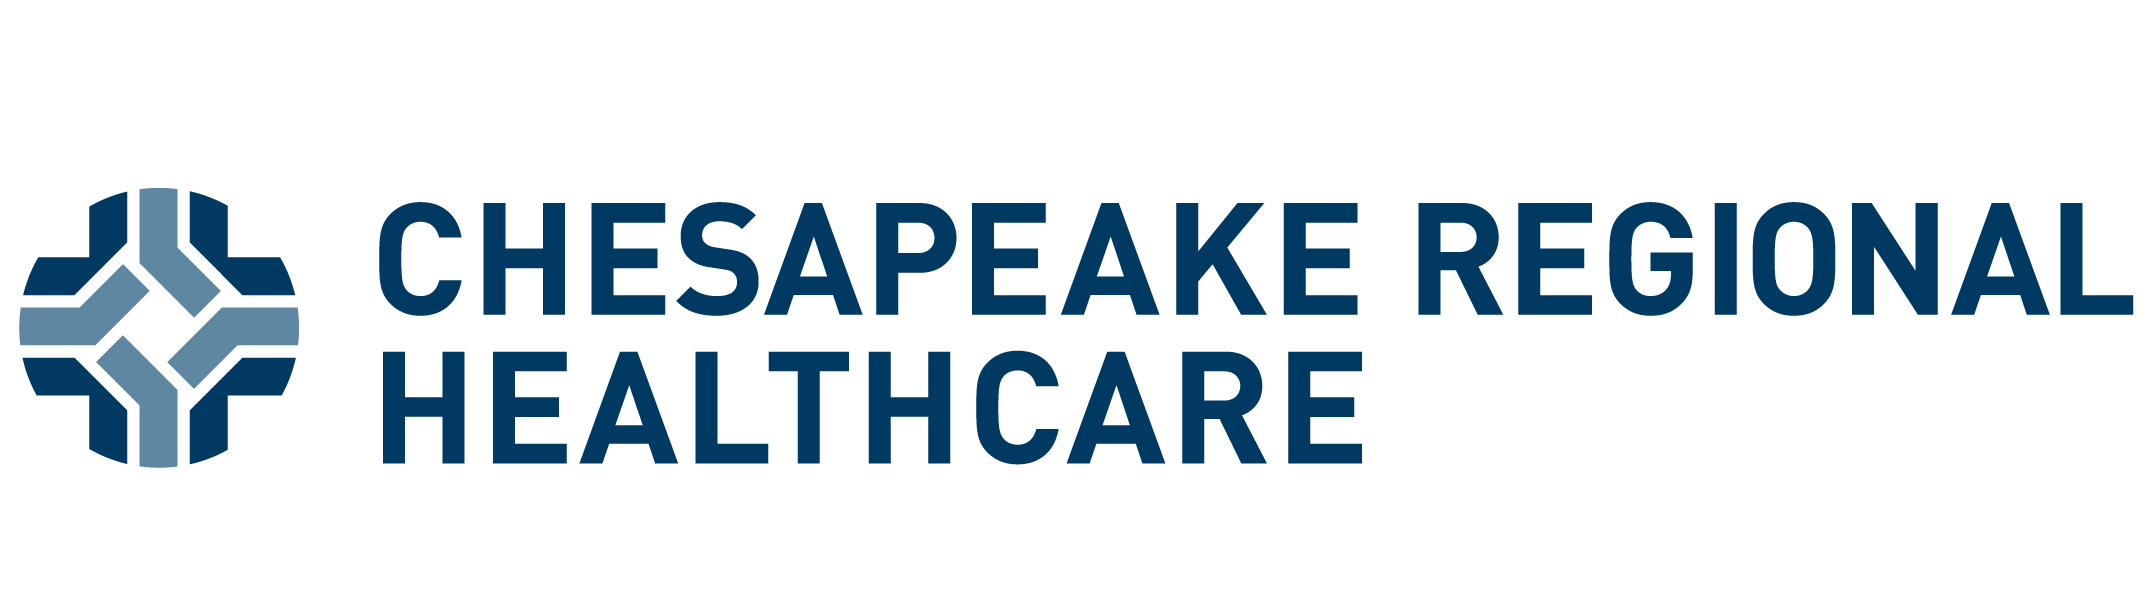 Chesapeake Regional Healthcare is in an imaging center joint venture with OIA for Diagnostic Center Development